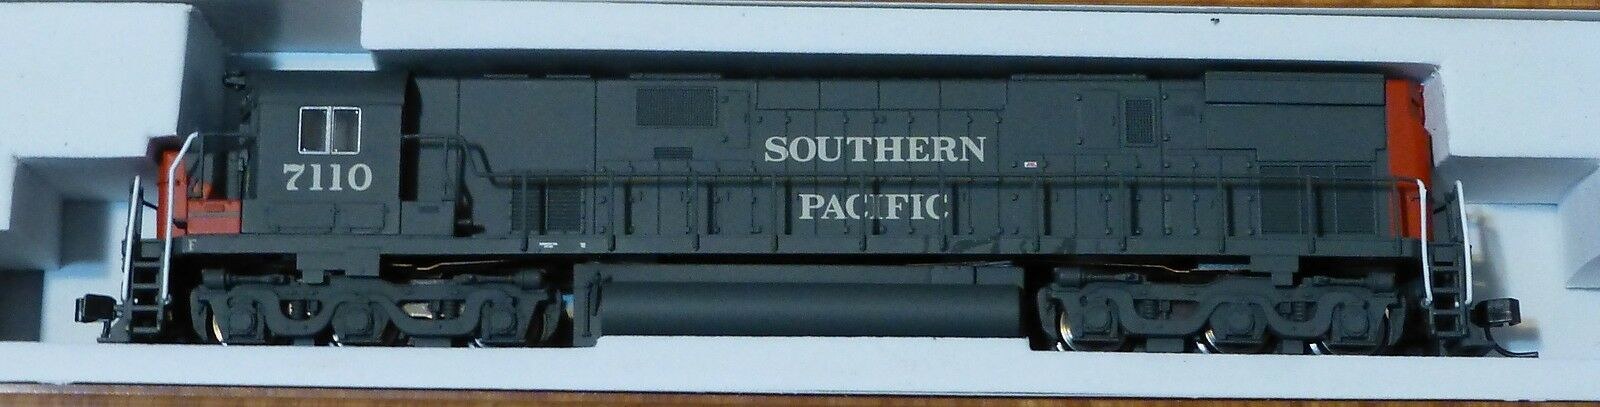 Atlas N  40001975 Southern Pacific  Rd  7110  C-628  Locomotive  DC